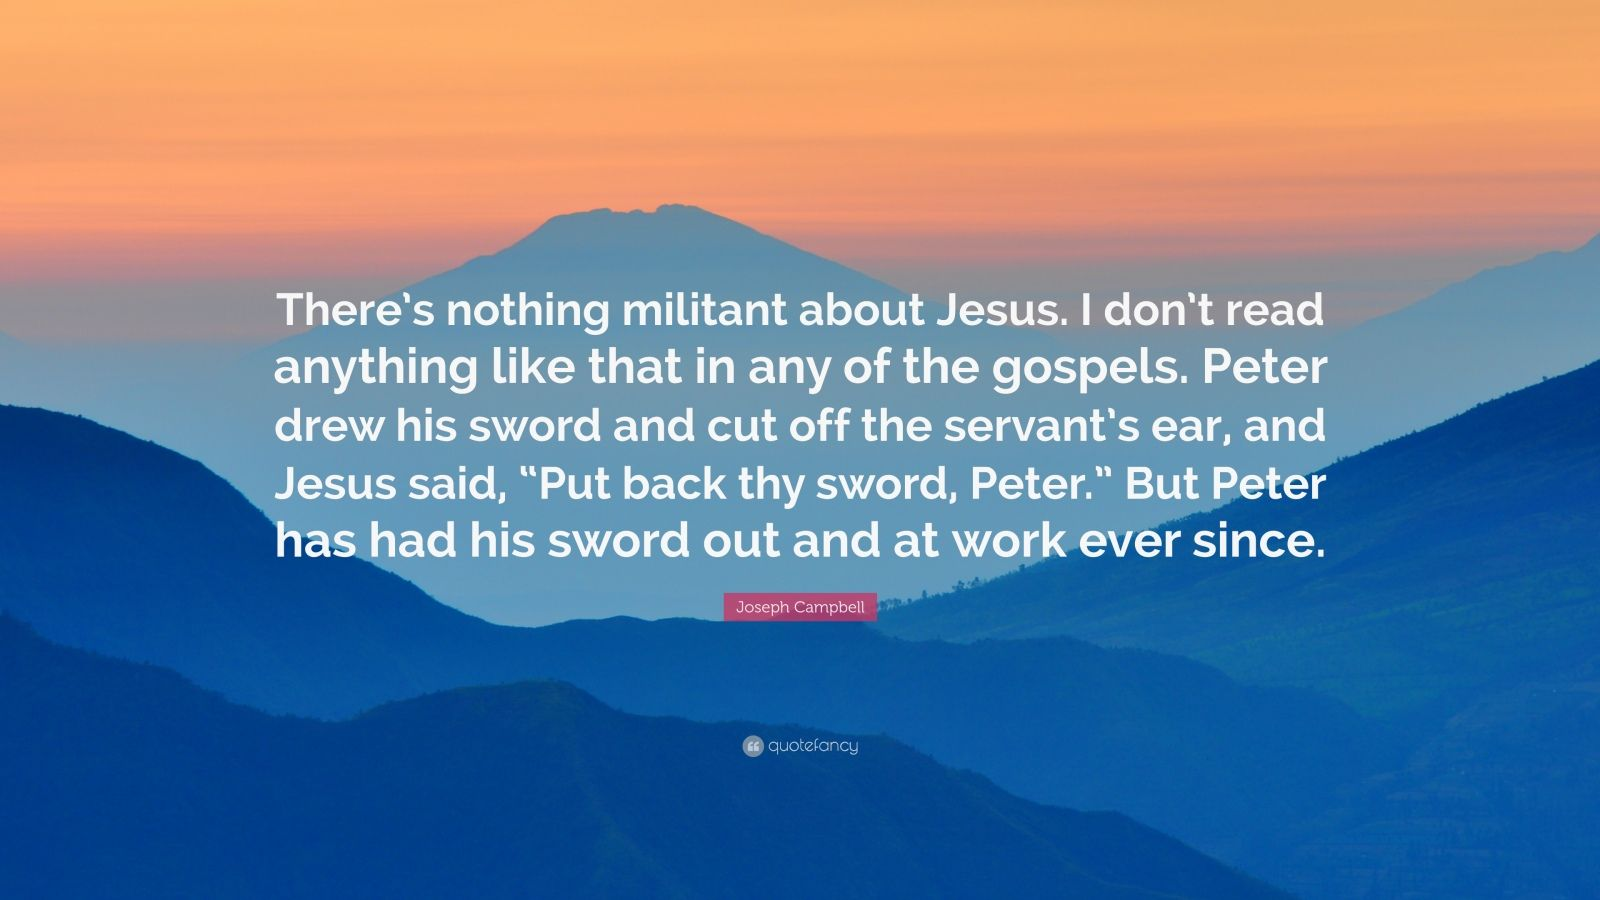 """Joseph Campbell Quote: """"There's nothing militant about Jesus. I don't read anything like that in any of the gospels. Peter drew his sword and cut off the servant's ear, and Jesus said, """"Put back thy sword, Peter."""" But Peter has had his sword out and at work ever since."""""""